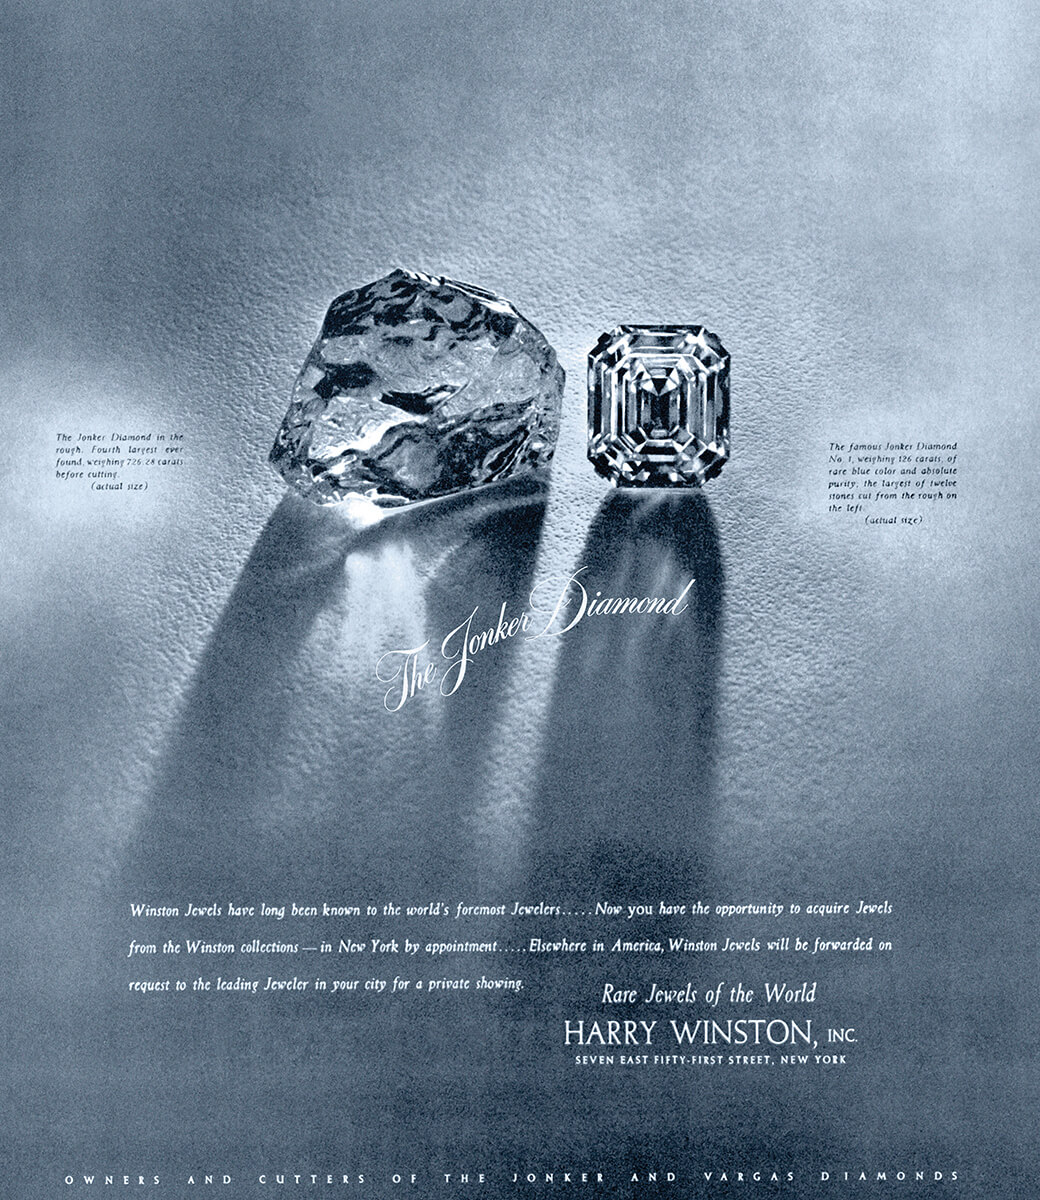 Vintage Harry Winston advertising with side-by-side images of the Jonker diamond rough next to one of it's largest cut stones